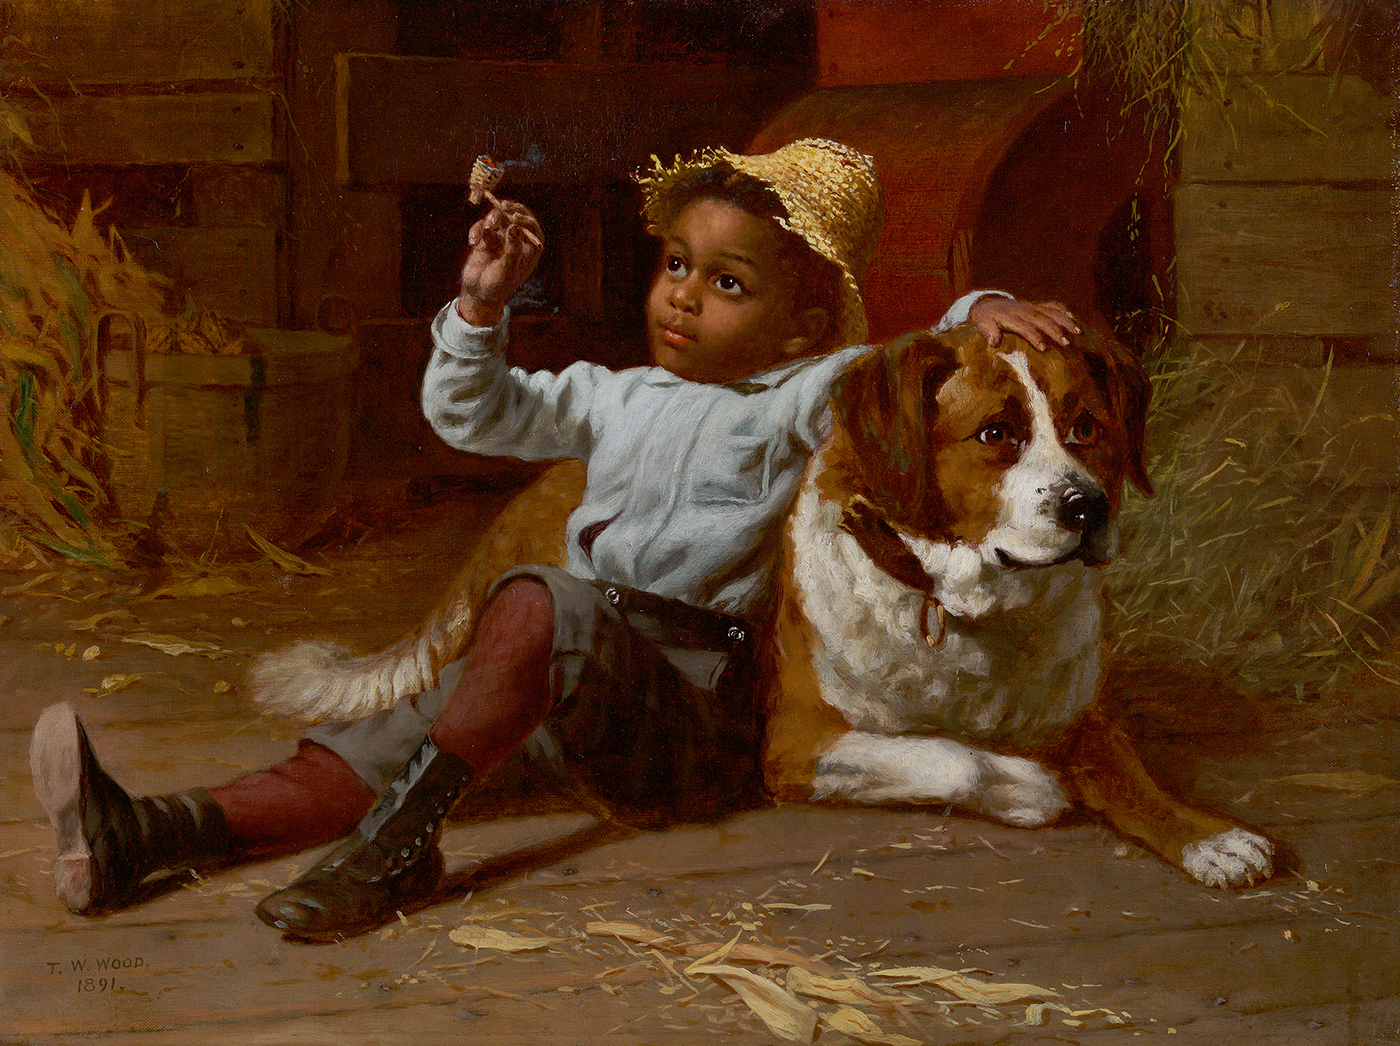 His First Smoke, 1891